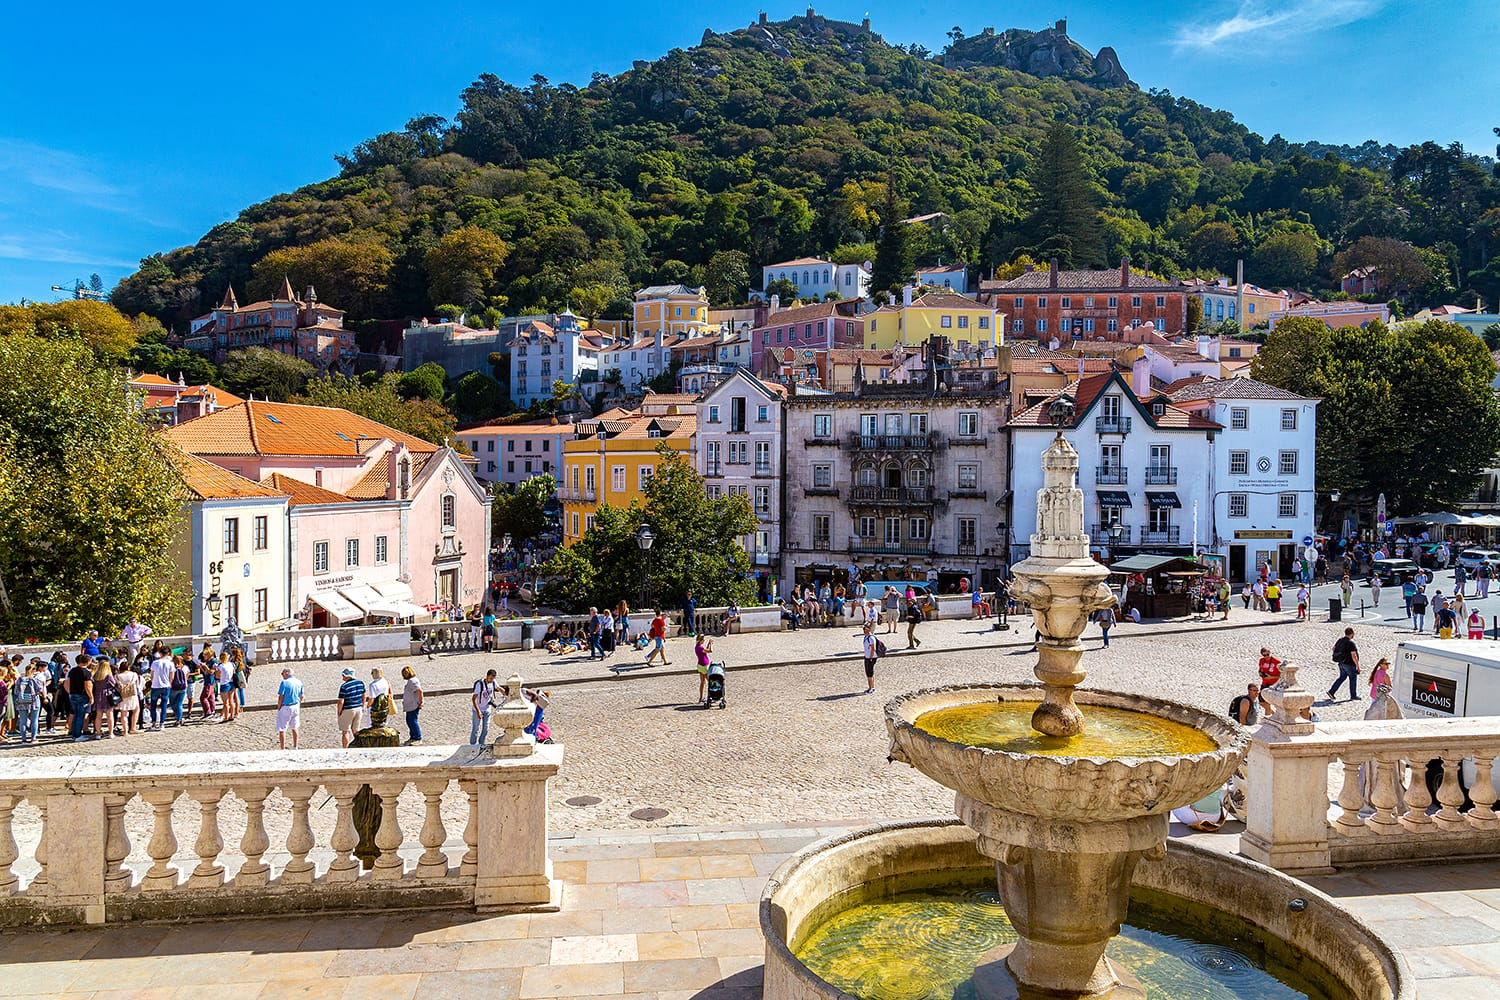 Historic center of the city of Sintra, in Portugal, seen from the balcony of the National Palace of Sintra, former residence of the royal family